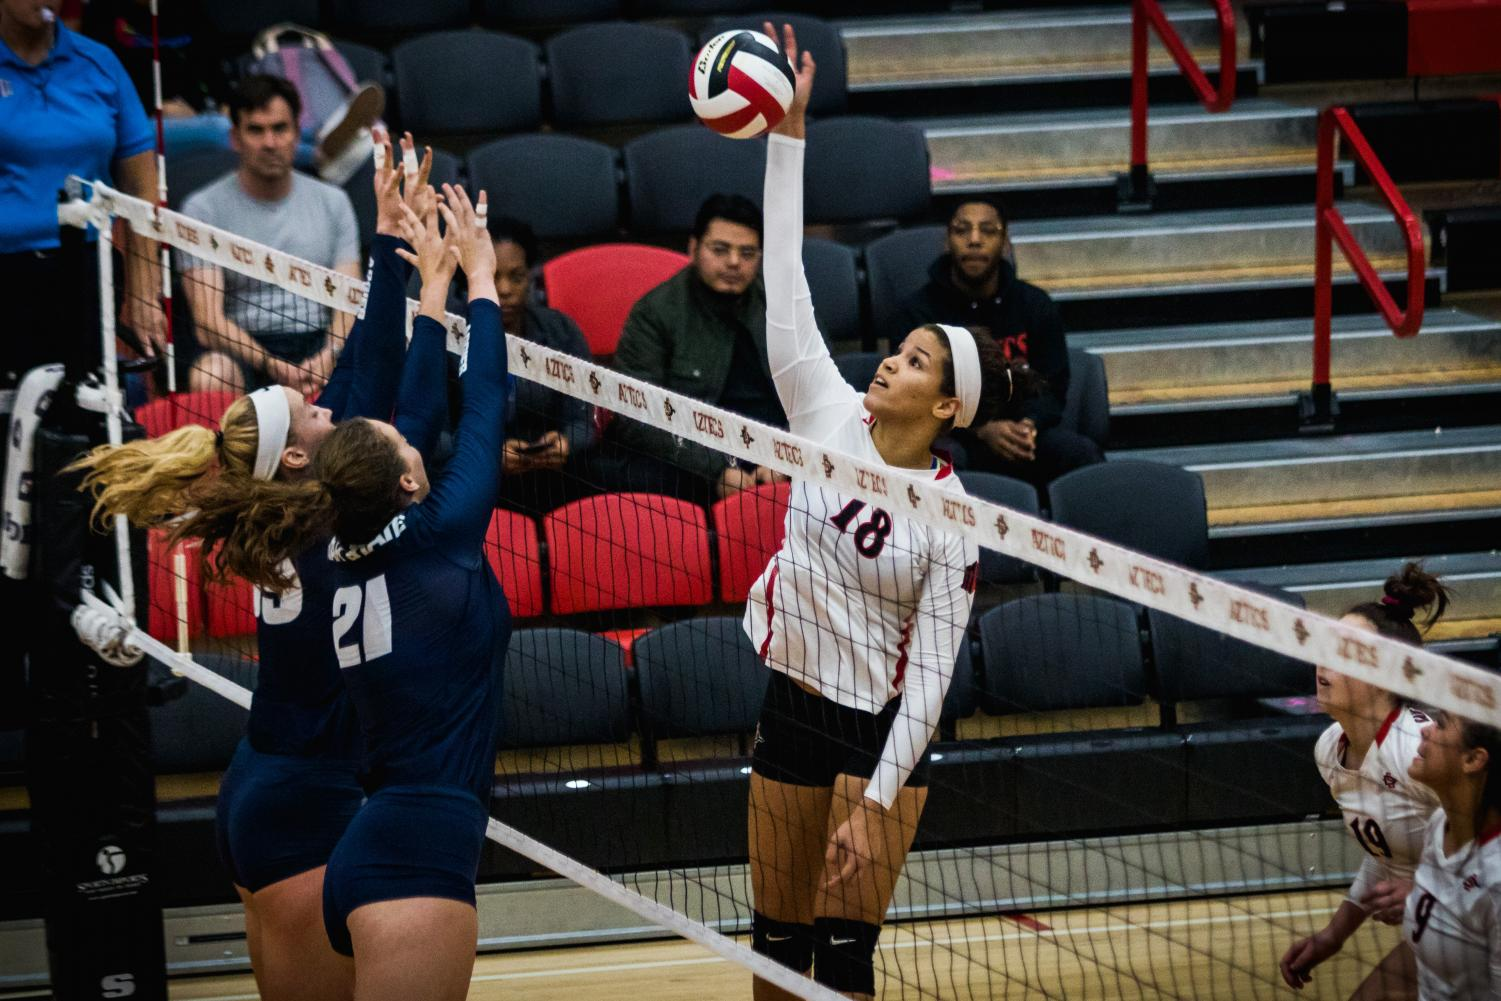 Junior middle blocker Tamia Reeves attempts to put the ball over the outstretched arms of two Utah State blockers during the Aztecs three-set victory over the Aggies on Nov. 1 at Peterson Gym.